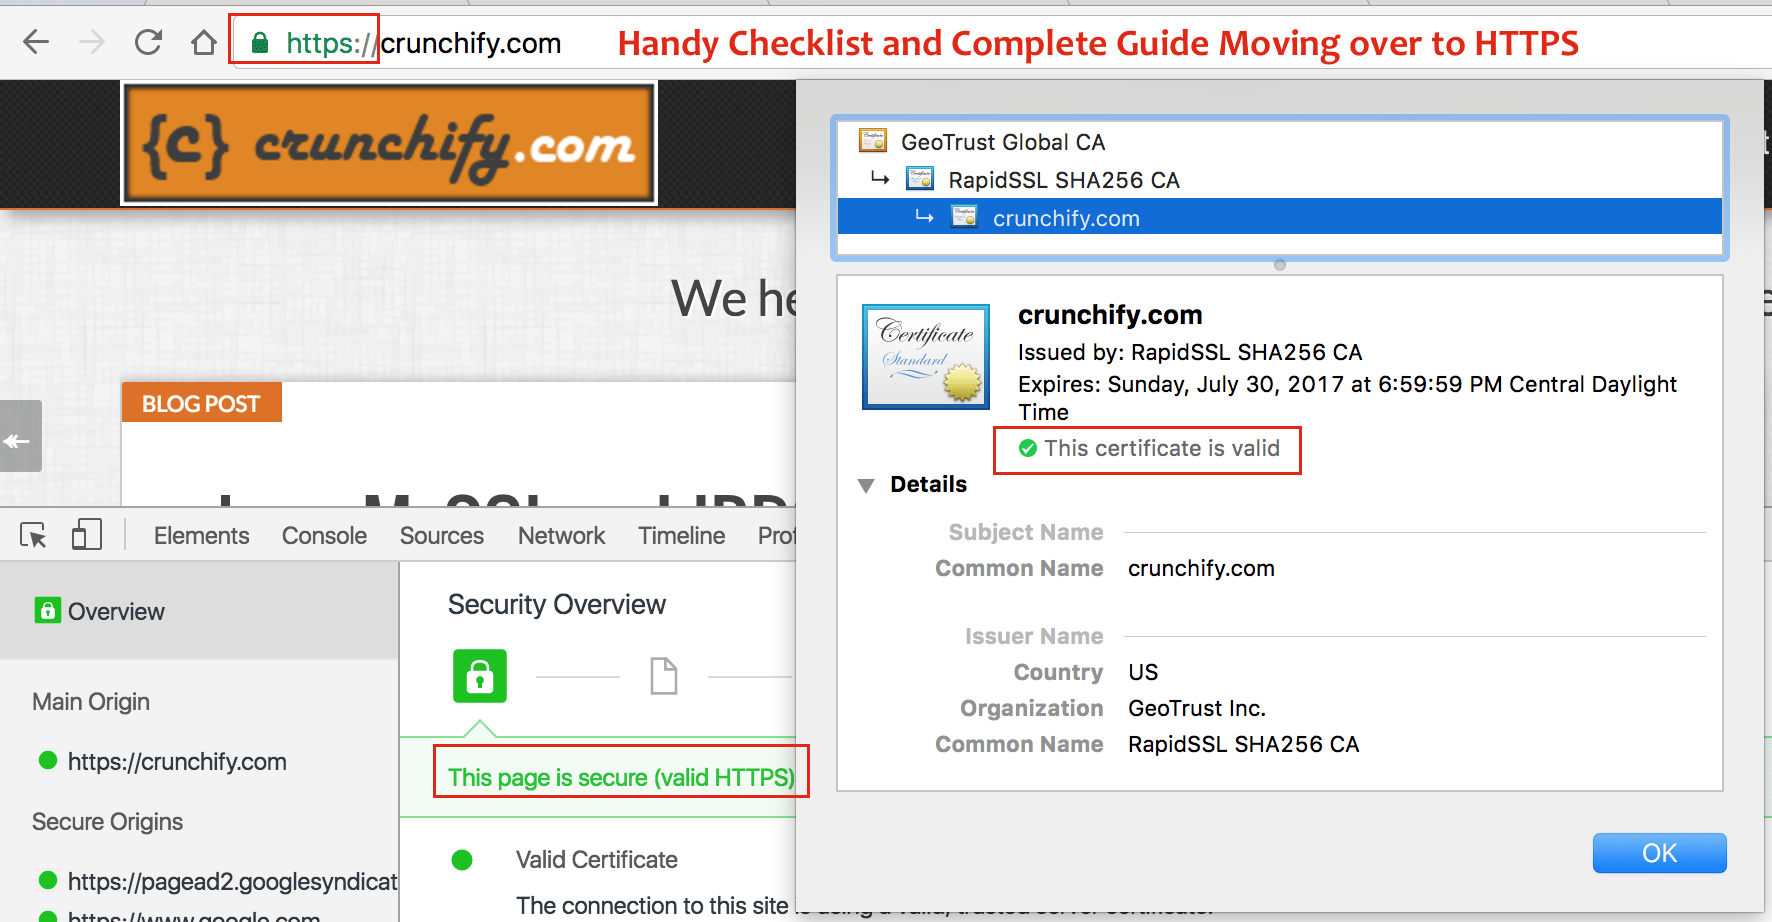 Handy Checklist and Complete Guide Moving over to HTTPS - Crunchify